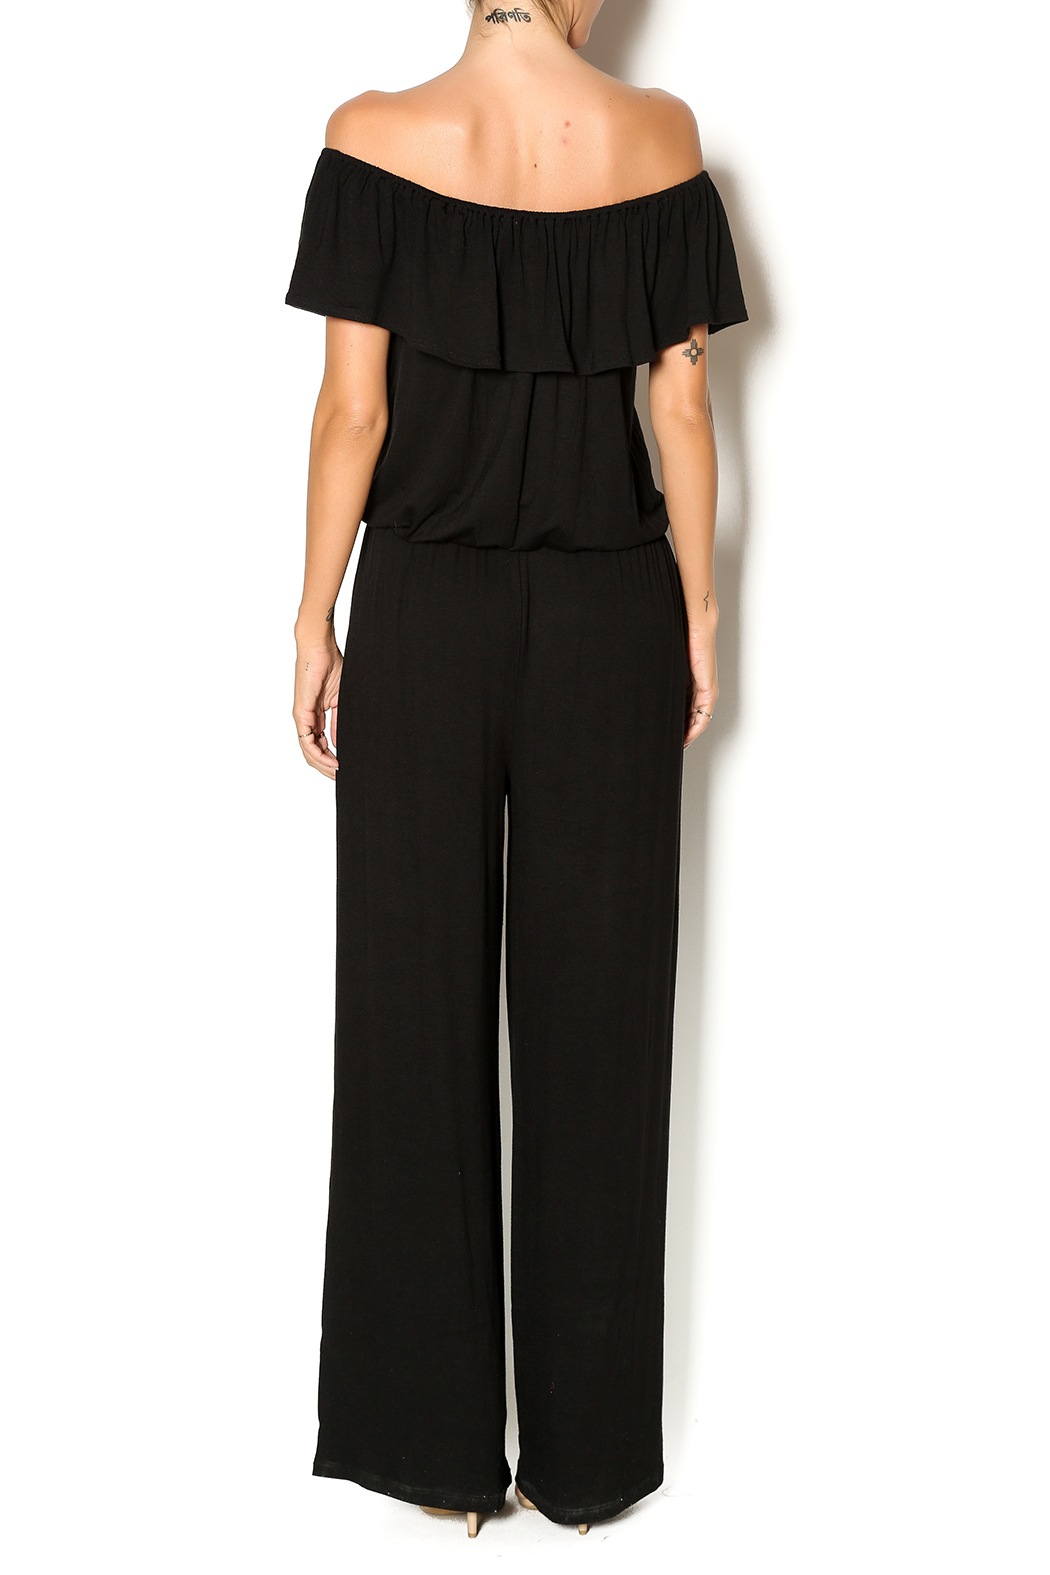 Chatoyant  Off Shoulder Jumsuit - Back Cropped Image